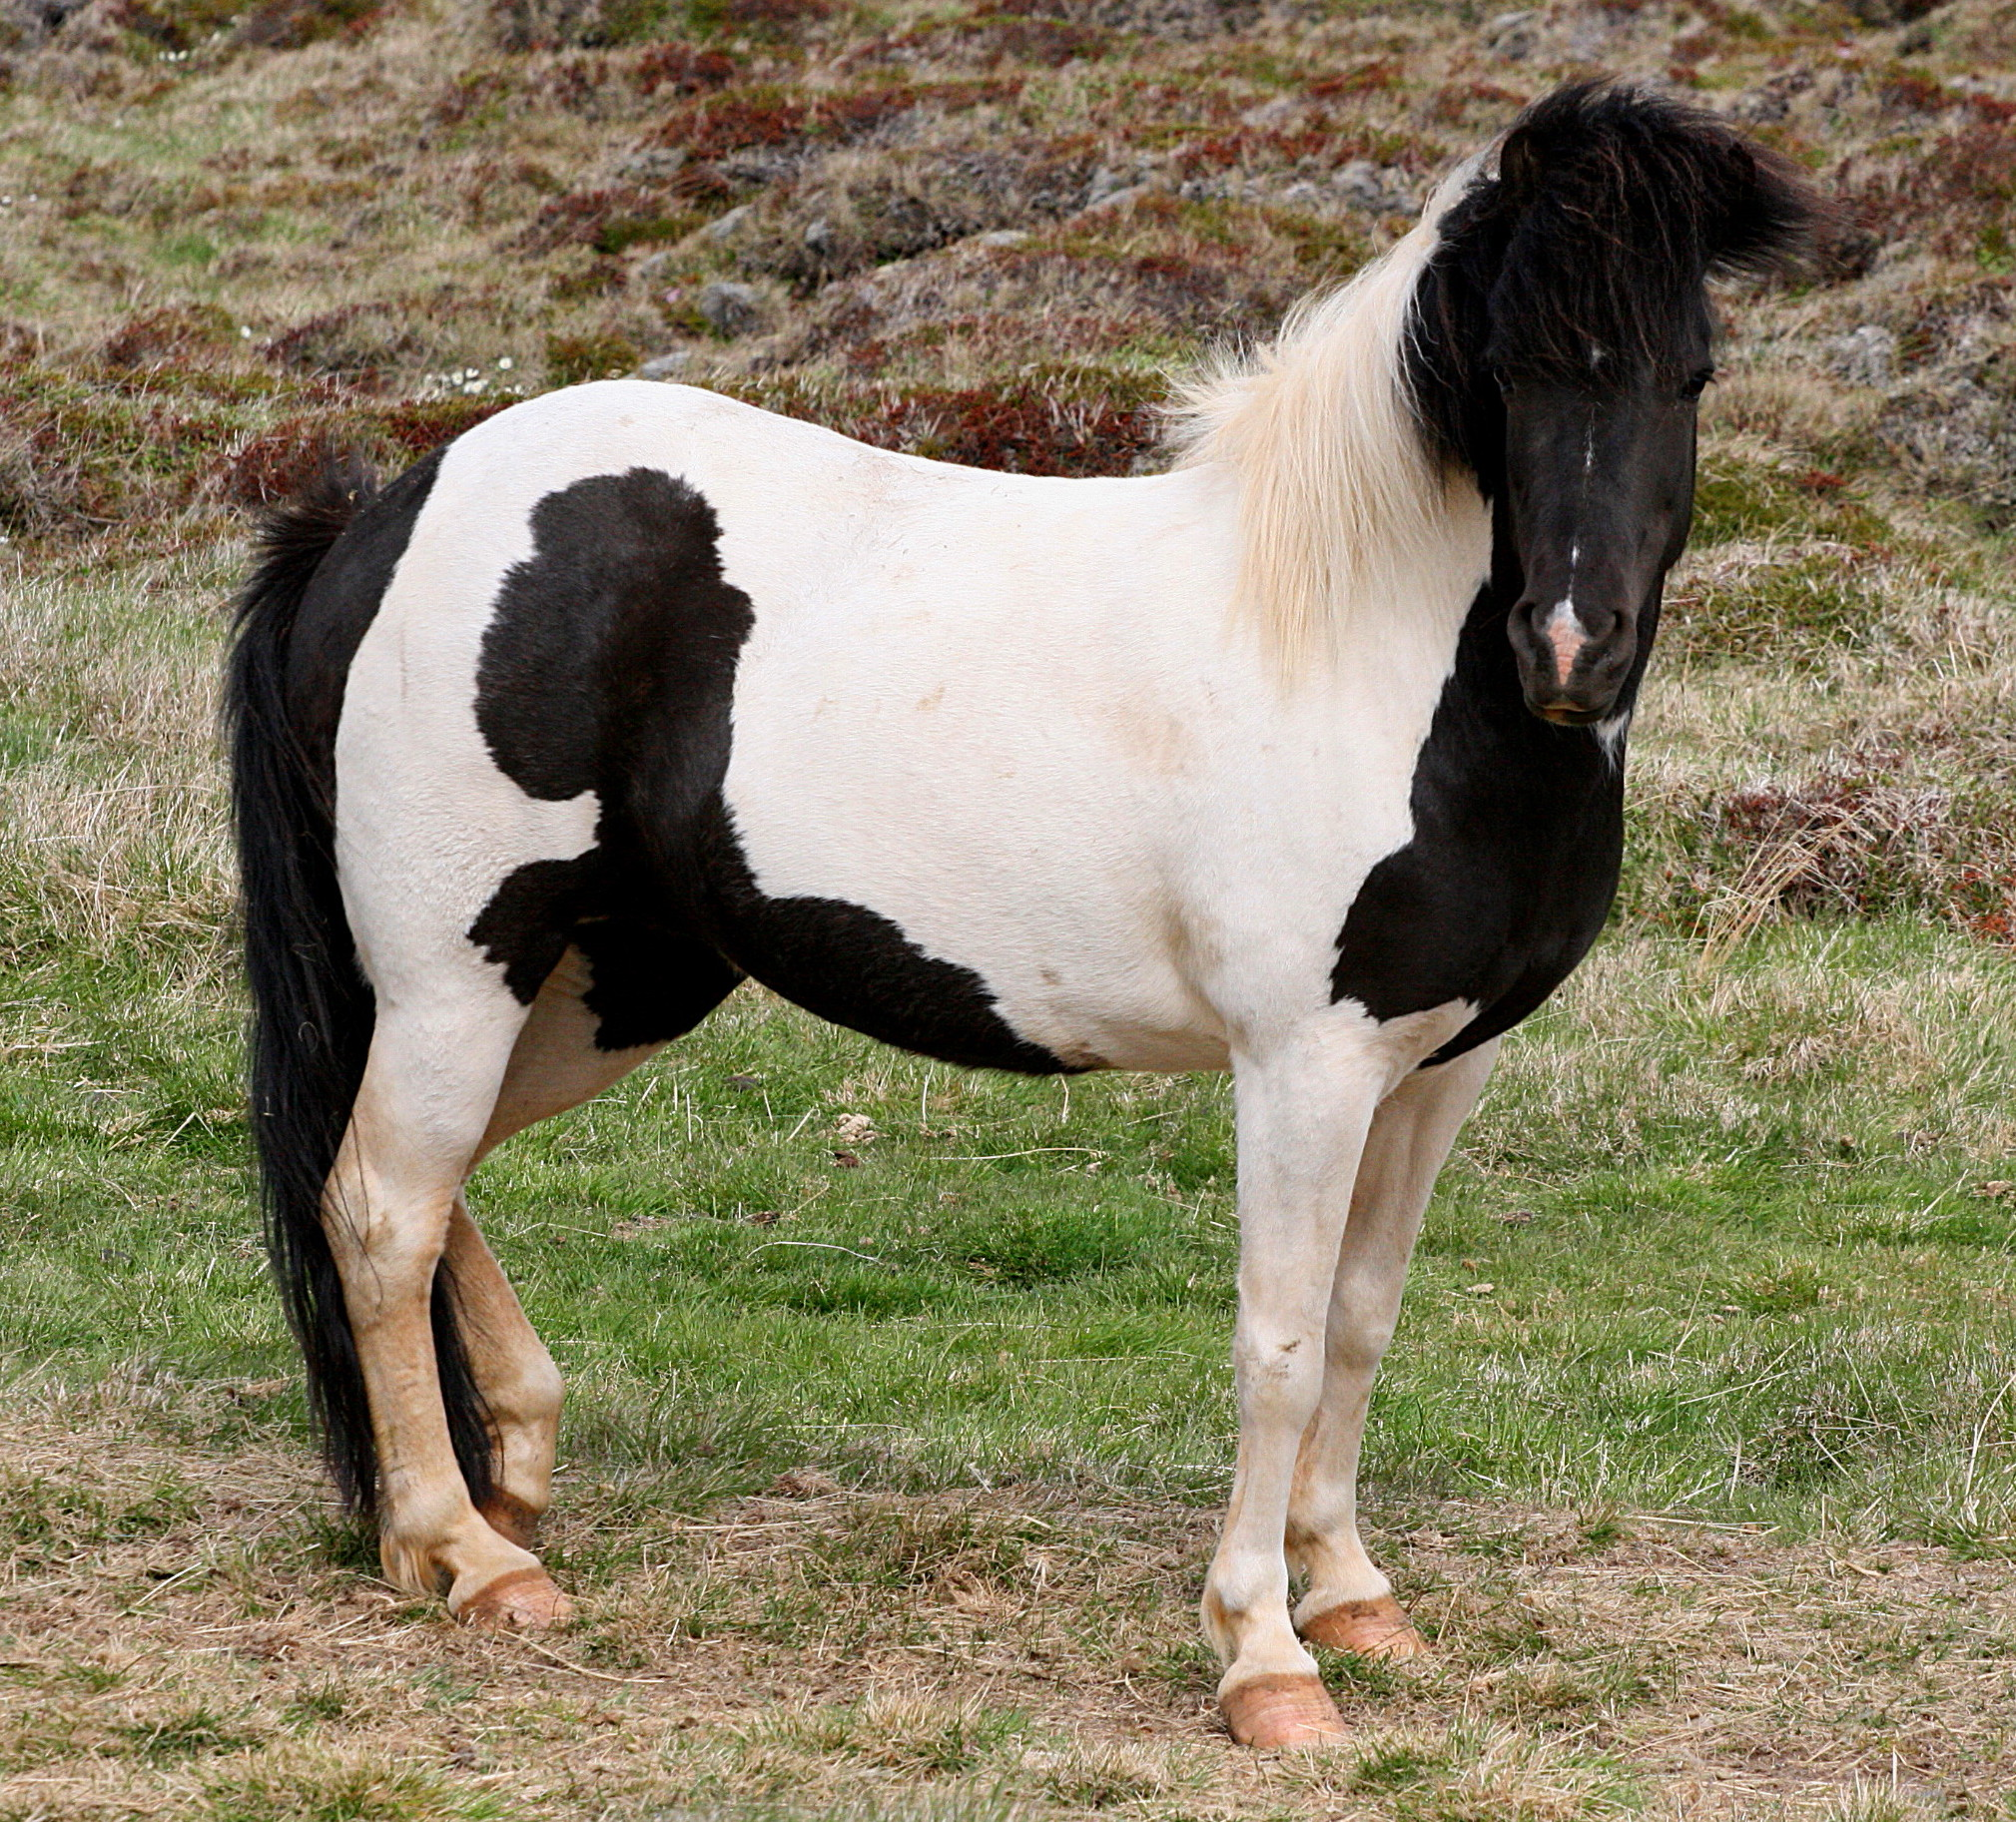 File:Beautiful black and white horse.jpg - Wikimedia Commons